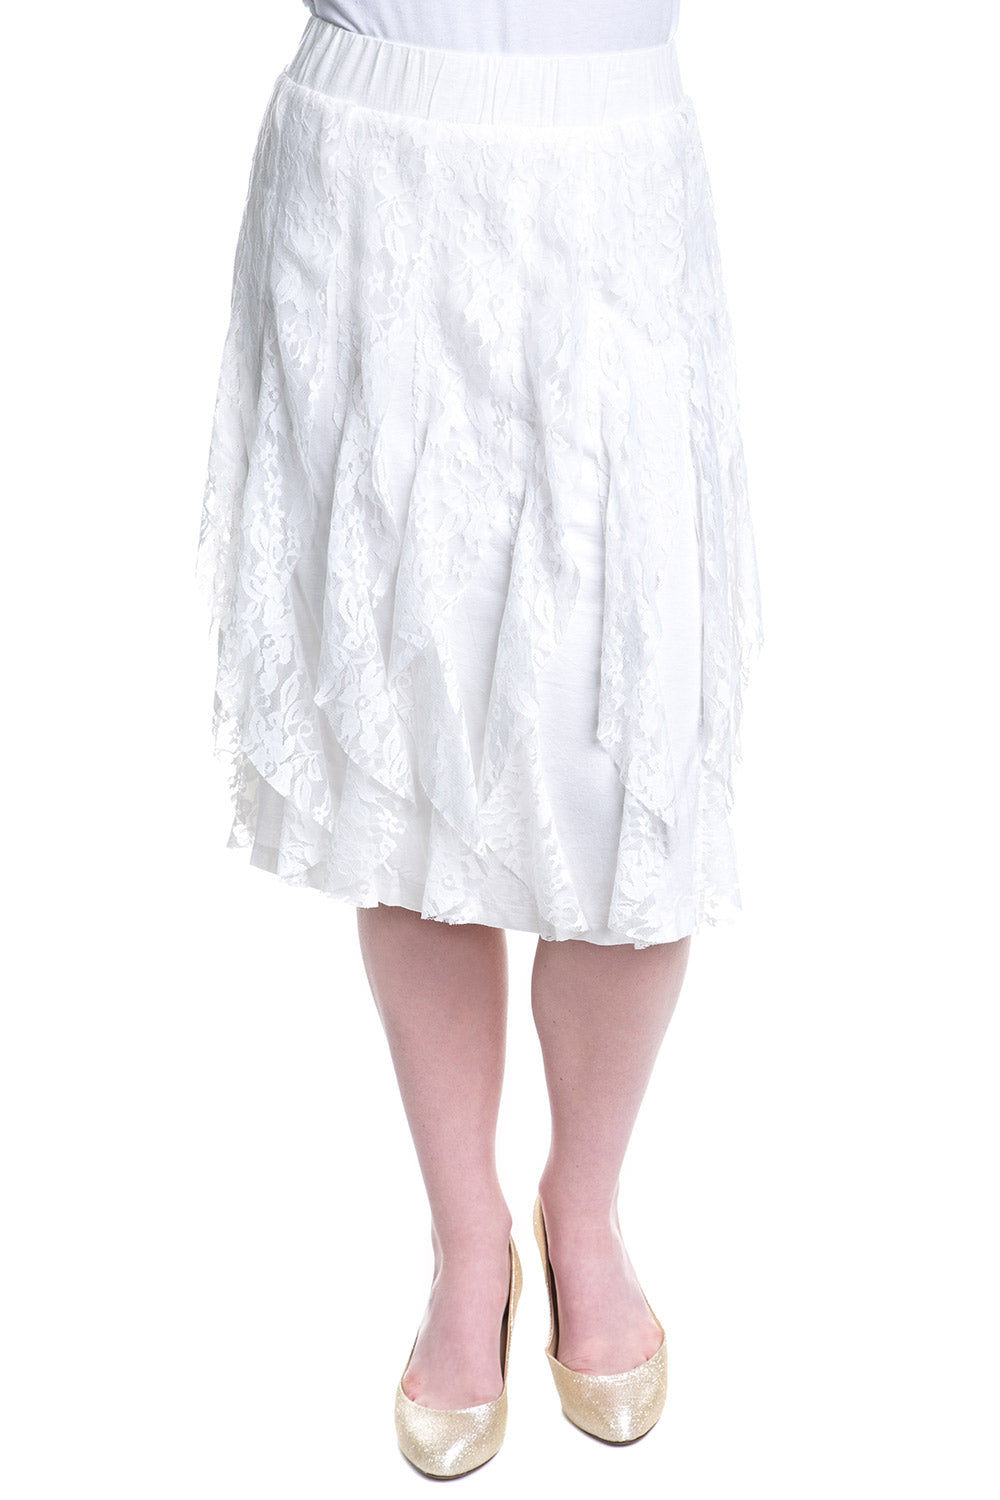 Type 1 Every Day Im Ruffling Skirt in Ivory